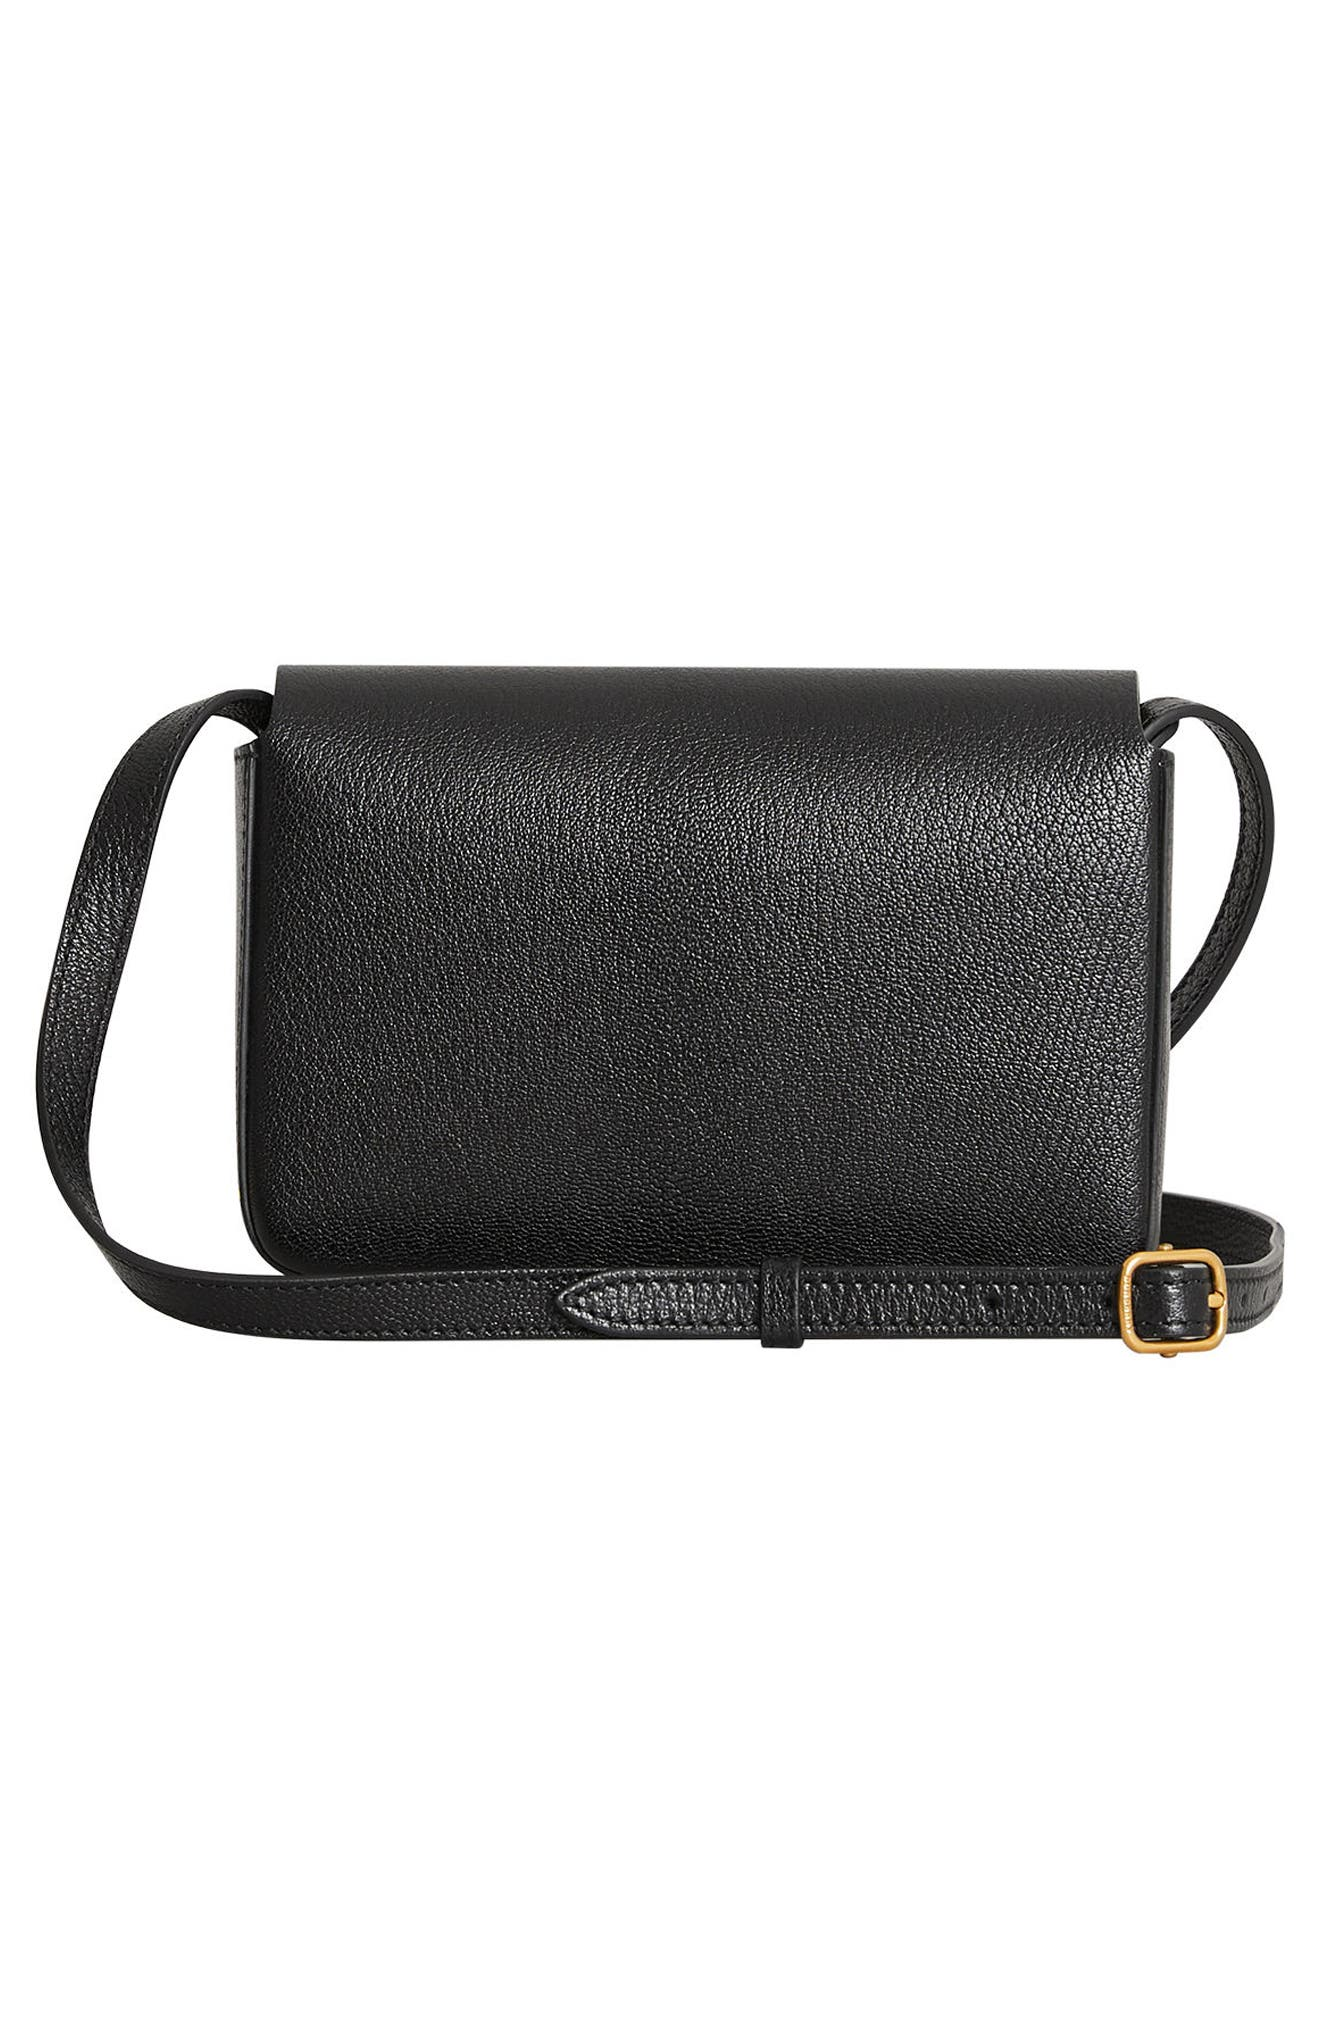 Hampshire Leather Crossbody Bag,                             Alternate thumbnail 2, color,                             001